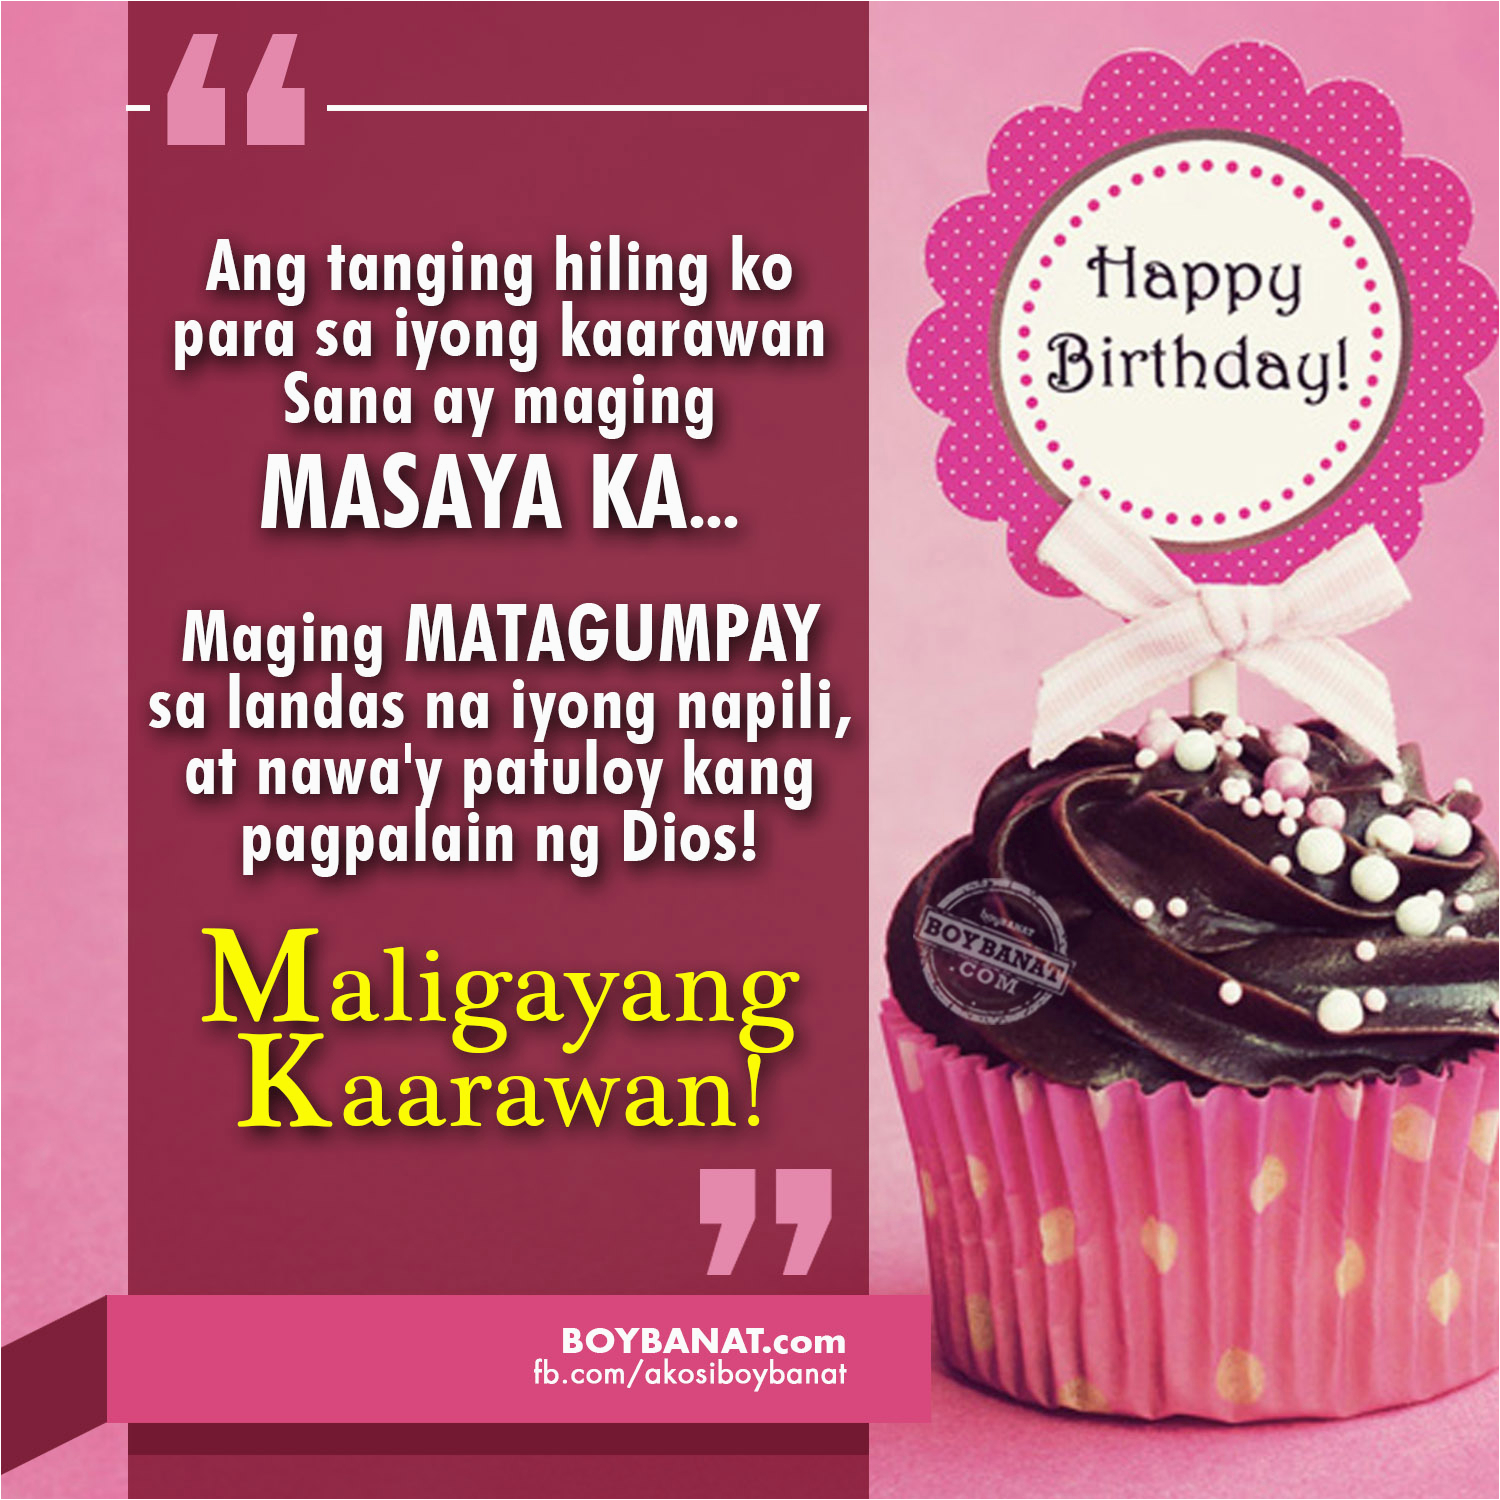 Happy Birthday to Me Quotes Tagalog Happy Birthday Quotes and Heartfelt Birthday Messages